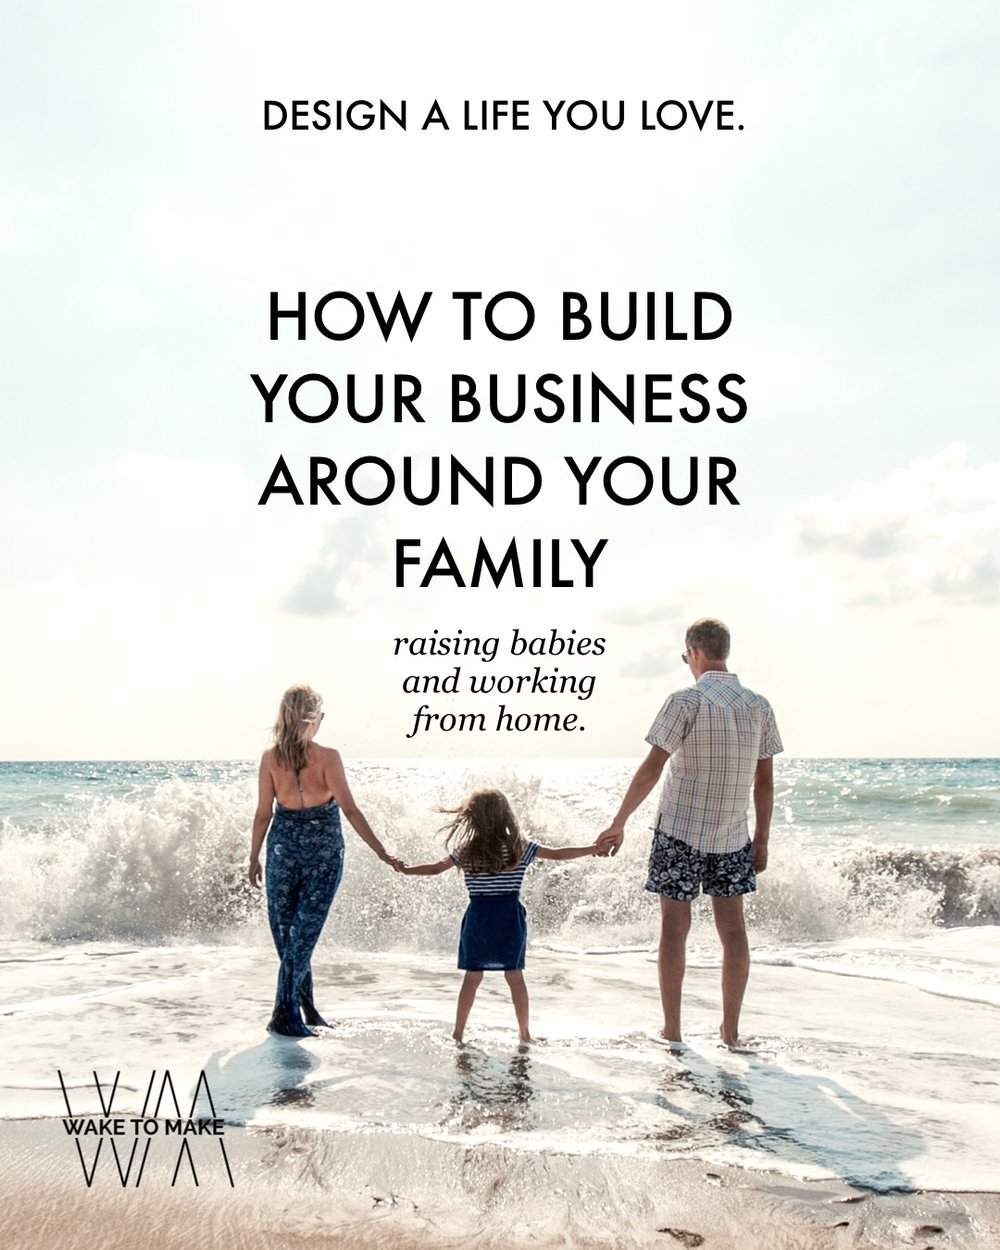 Episode 18 - How to Build a Business Around Your Family. Raising babies and working from home.